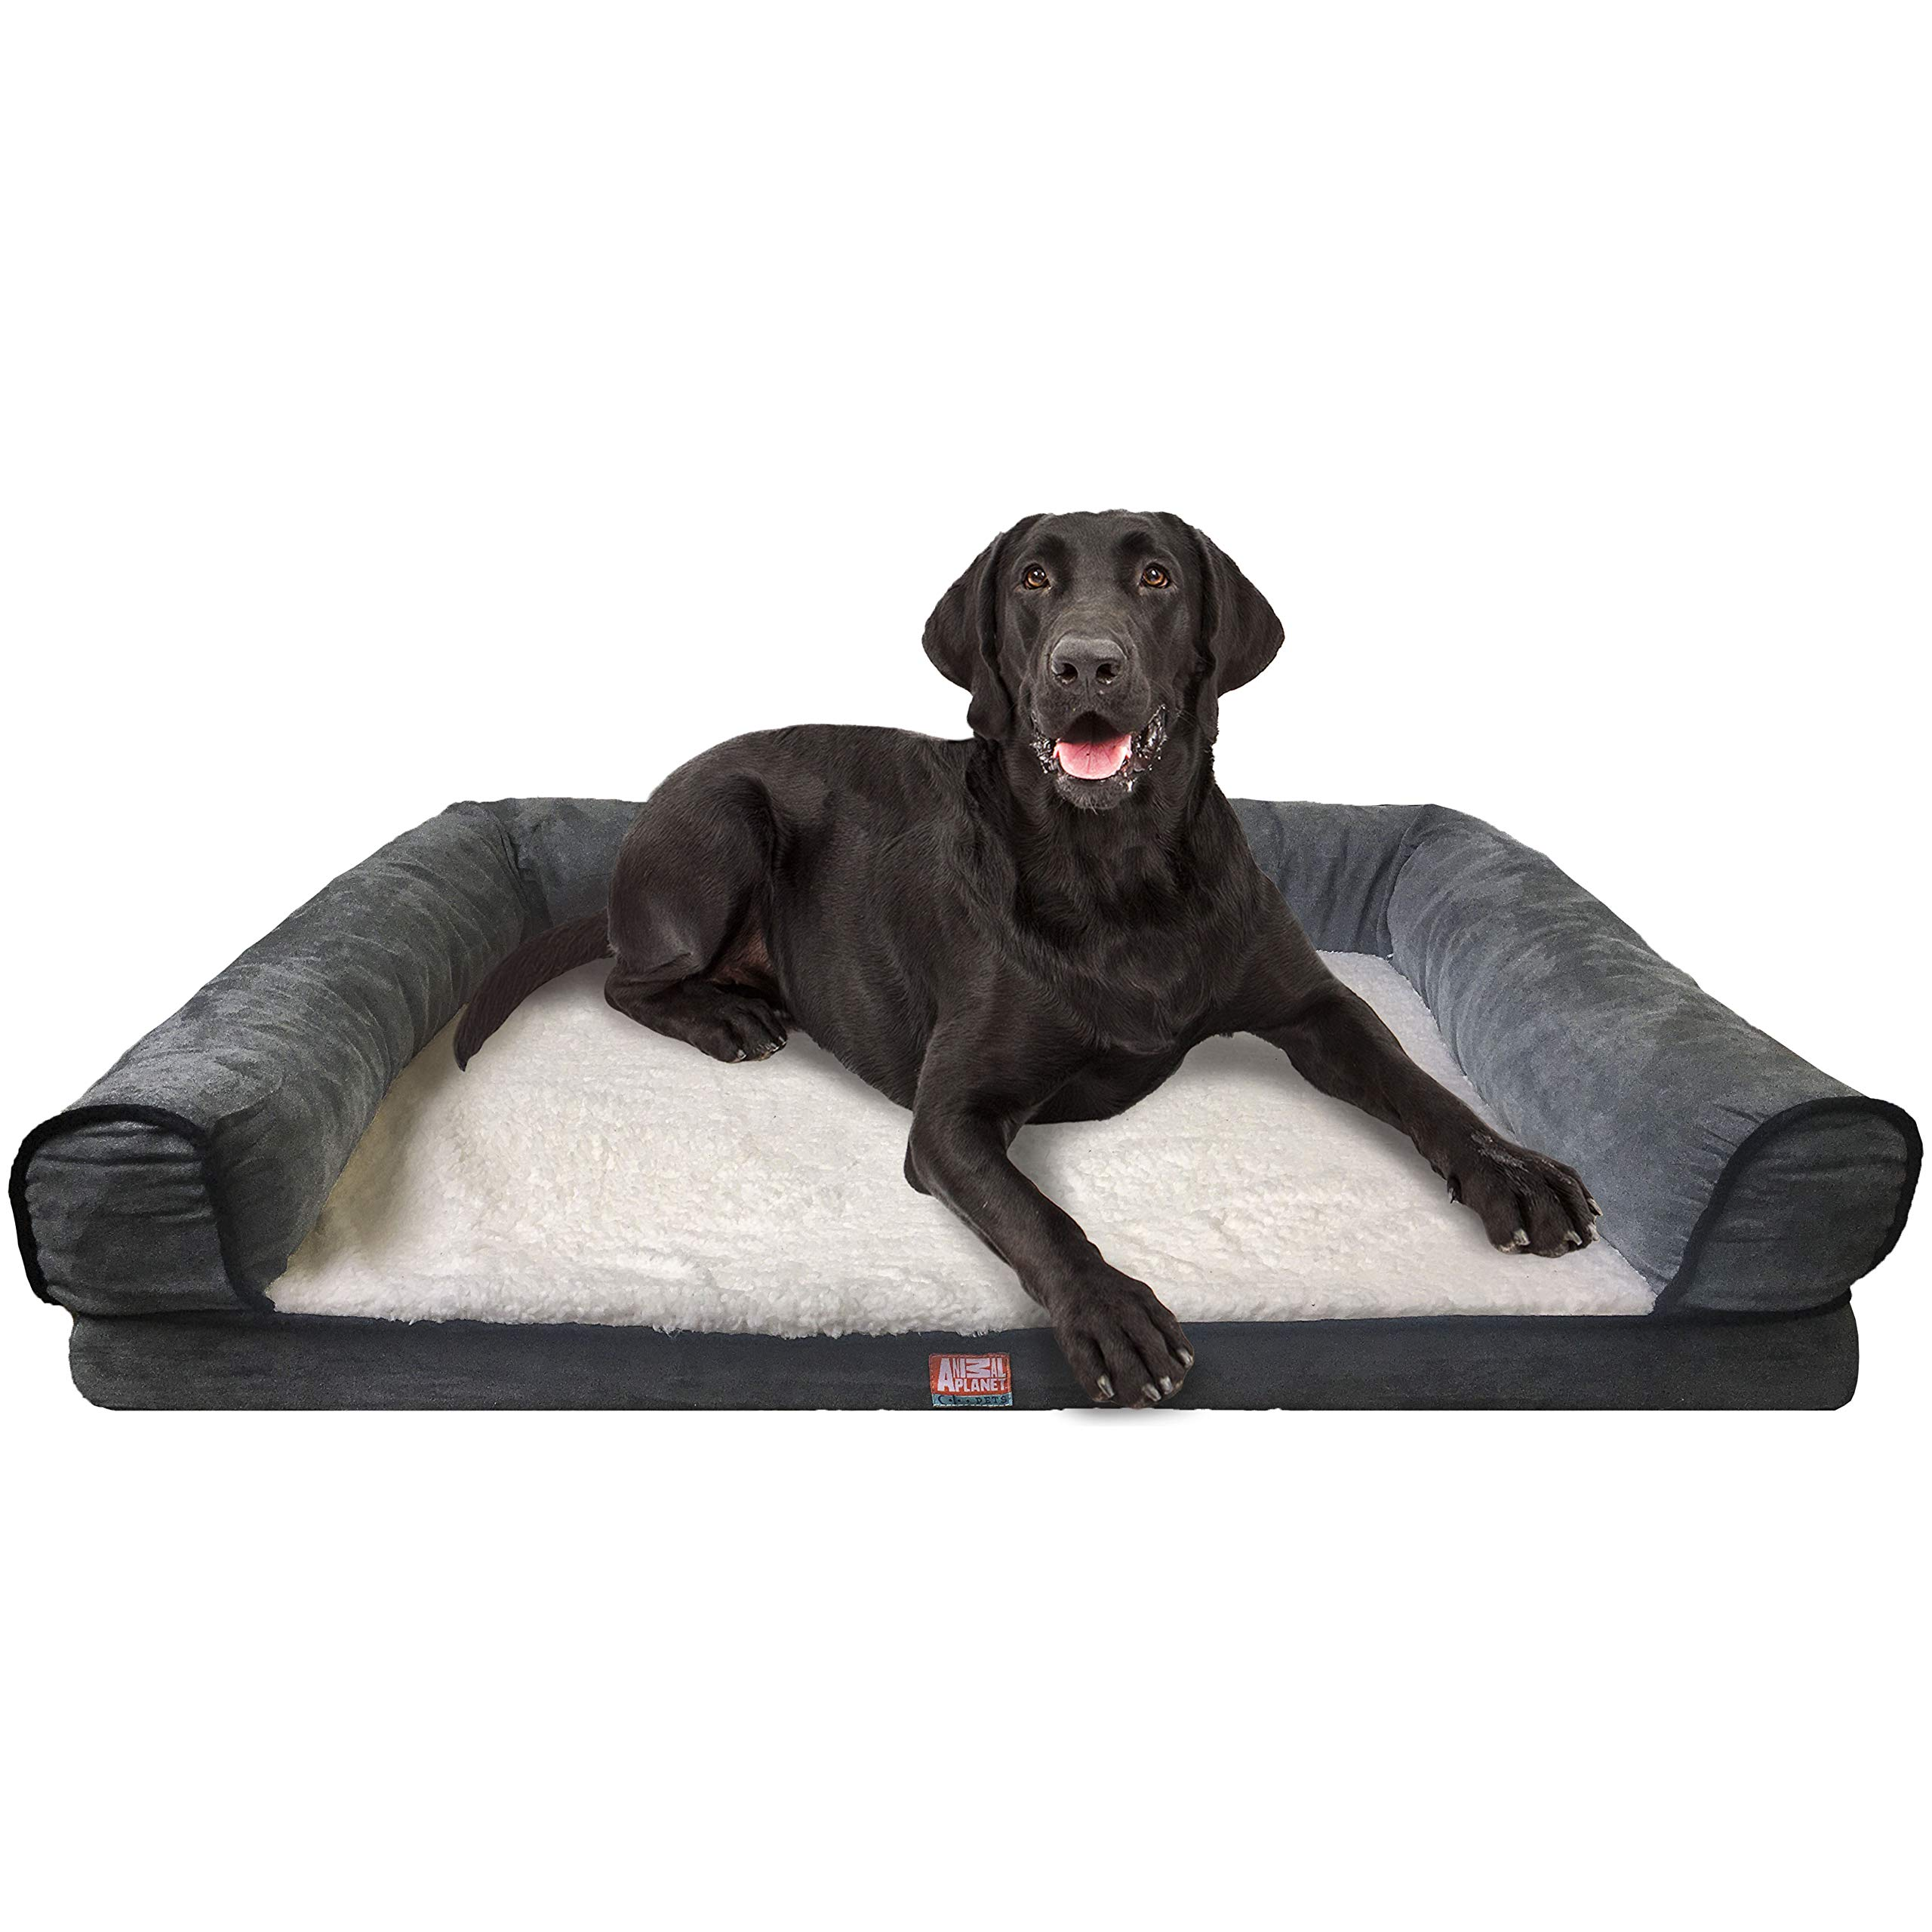 Animal Planet Orthopedic Luxury Dog Bed - Premium Memory Foam Pet Dog Sofa Bed Lounger with Washable Cover - for Dogs & Cats, Jumbo, Grey by Animal Planet